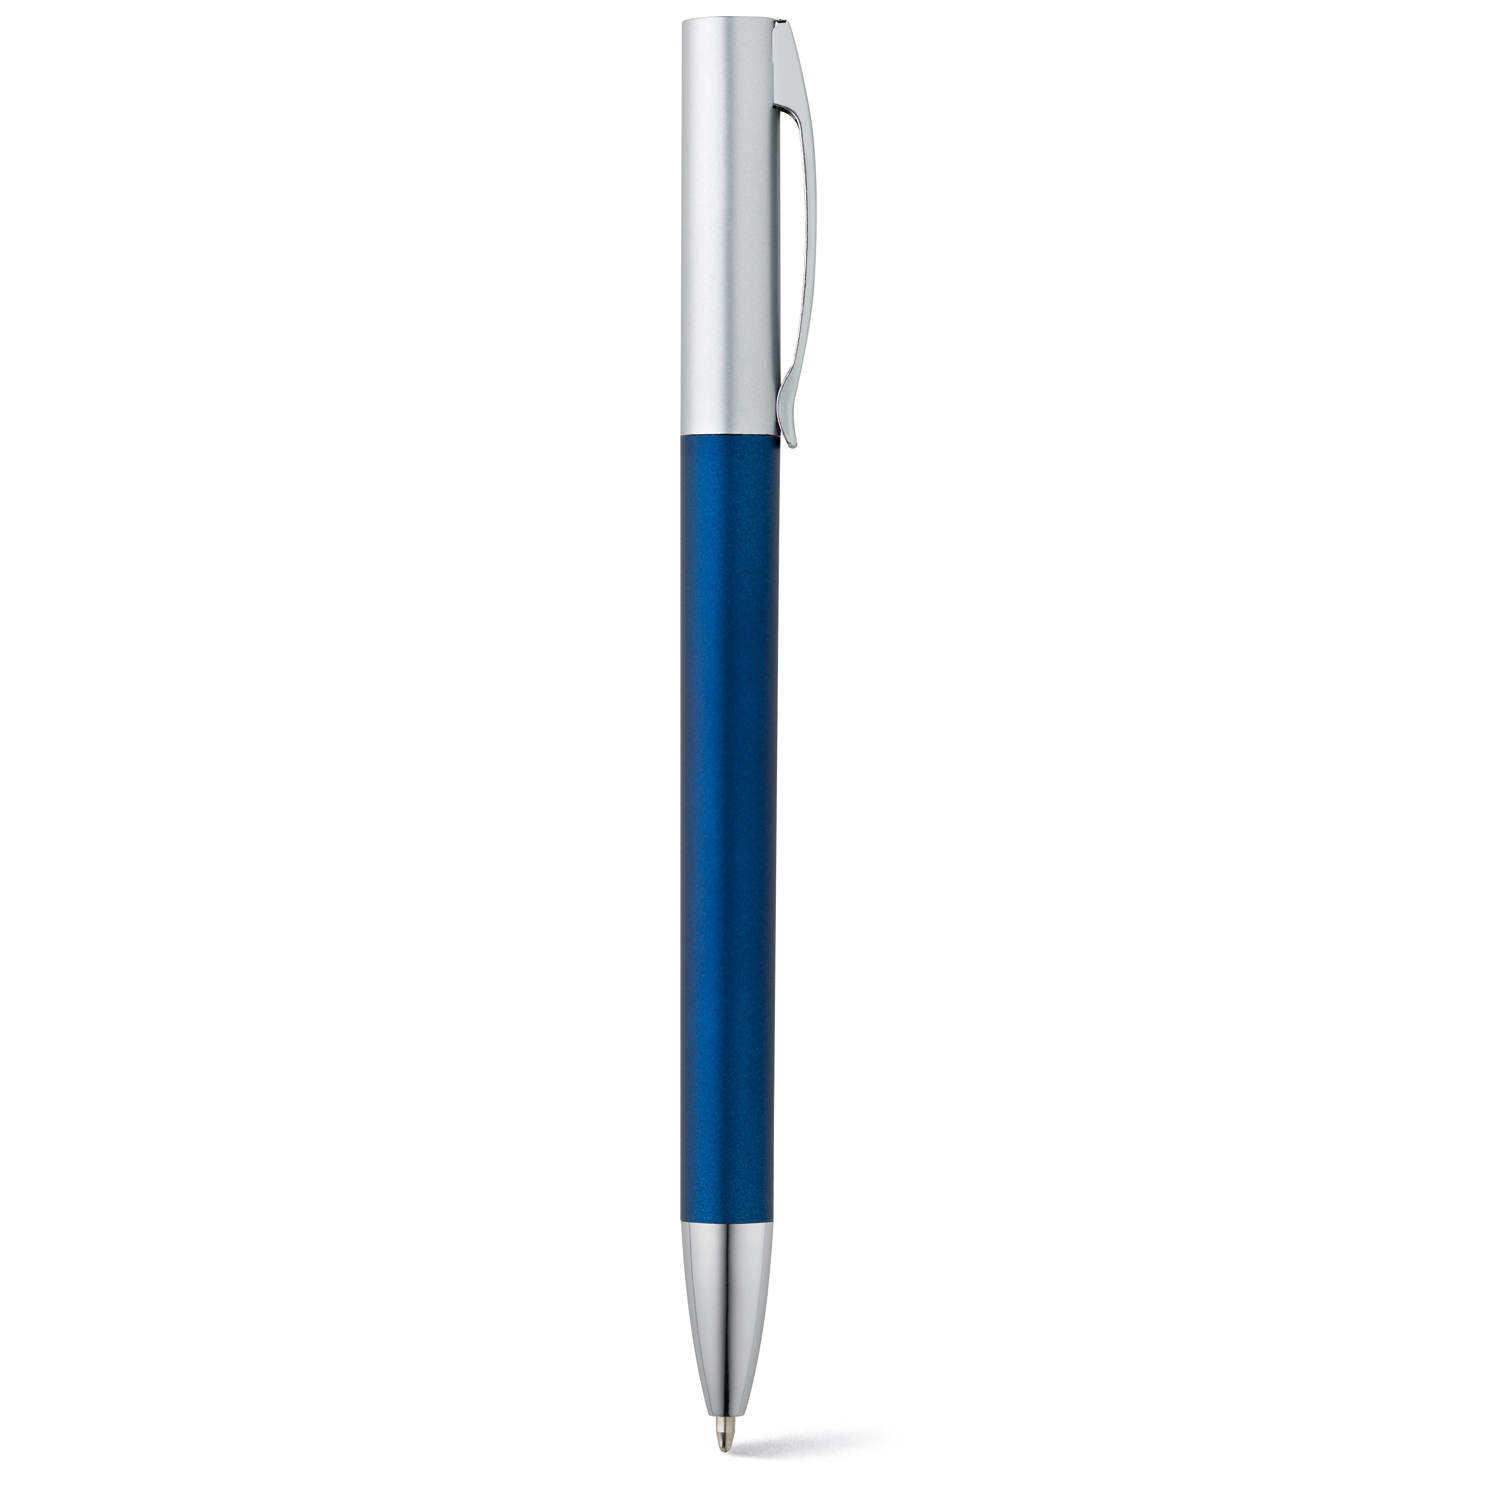 Pen 138 (Plastic pen with metal finishing) - hmi20138-07 (Blue)